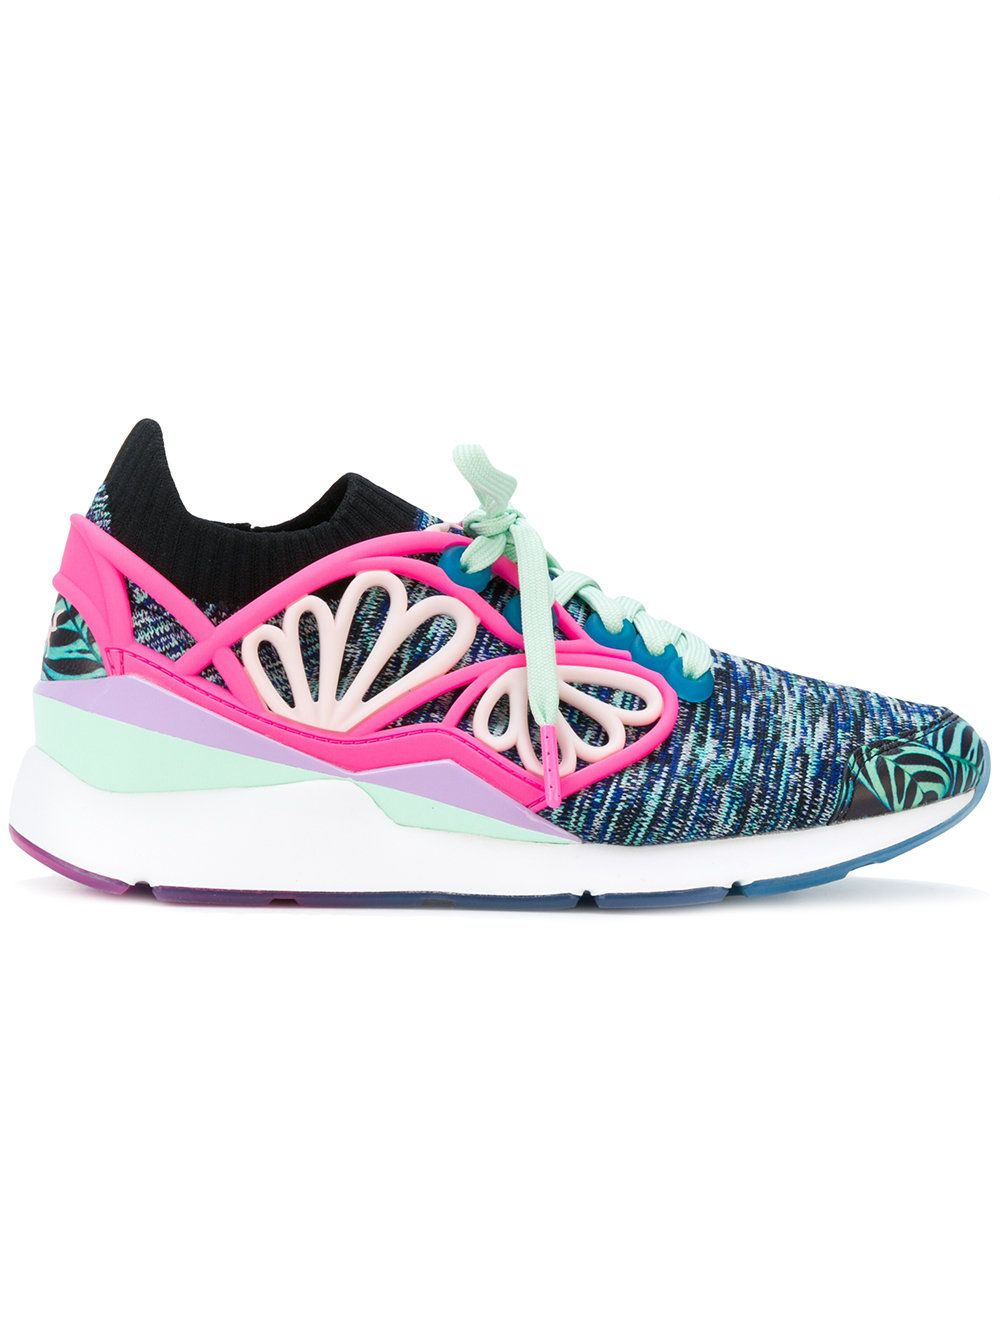 PUMA X SOPHIA WEBSTER | Pearl Cage sneakers #Shoes #PUMA X